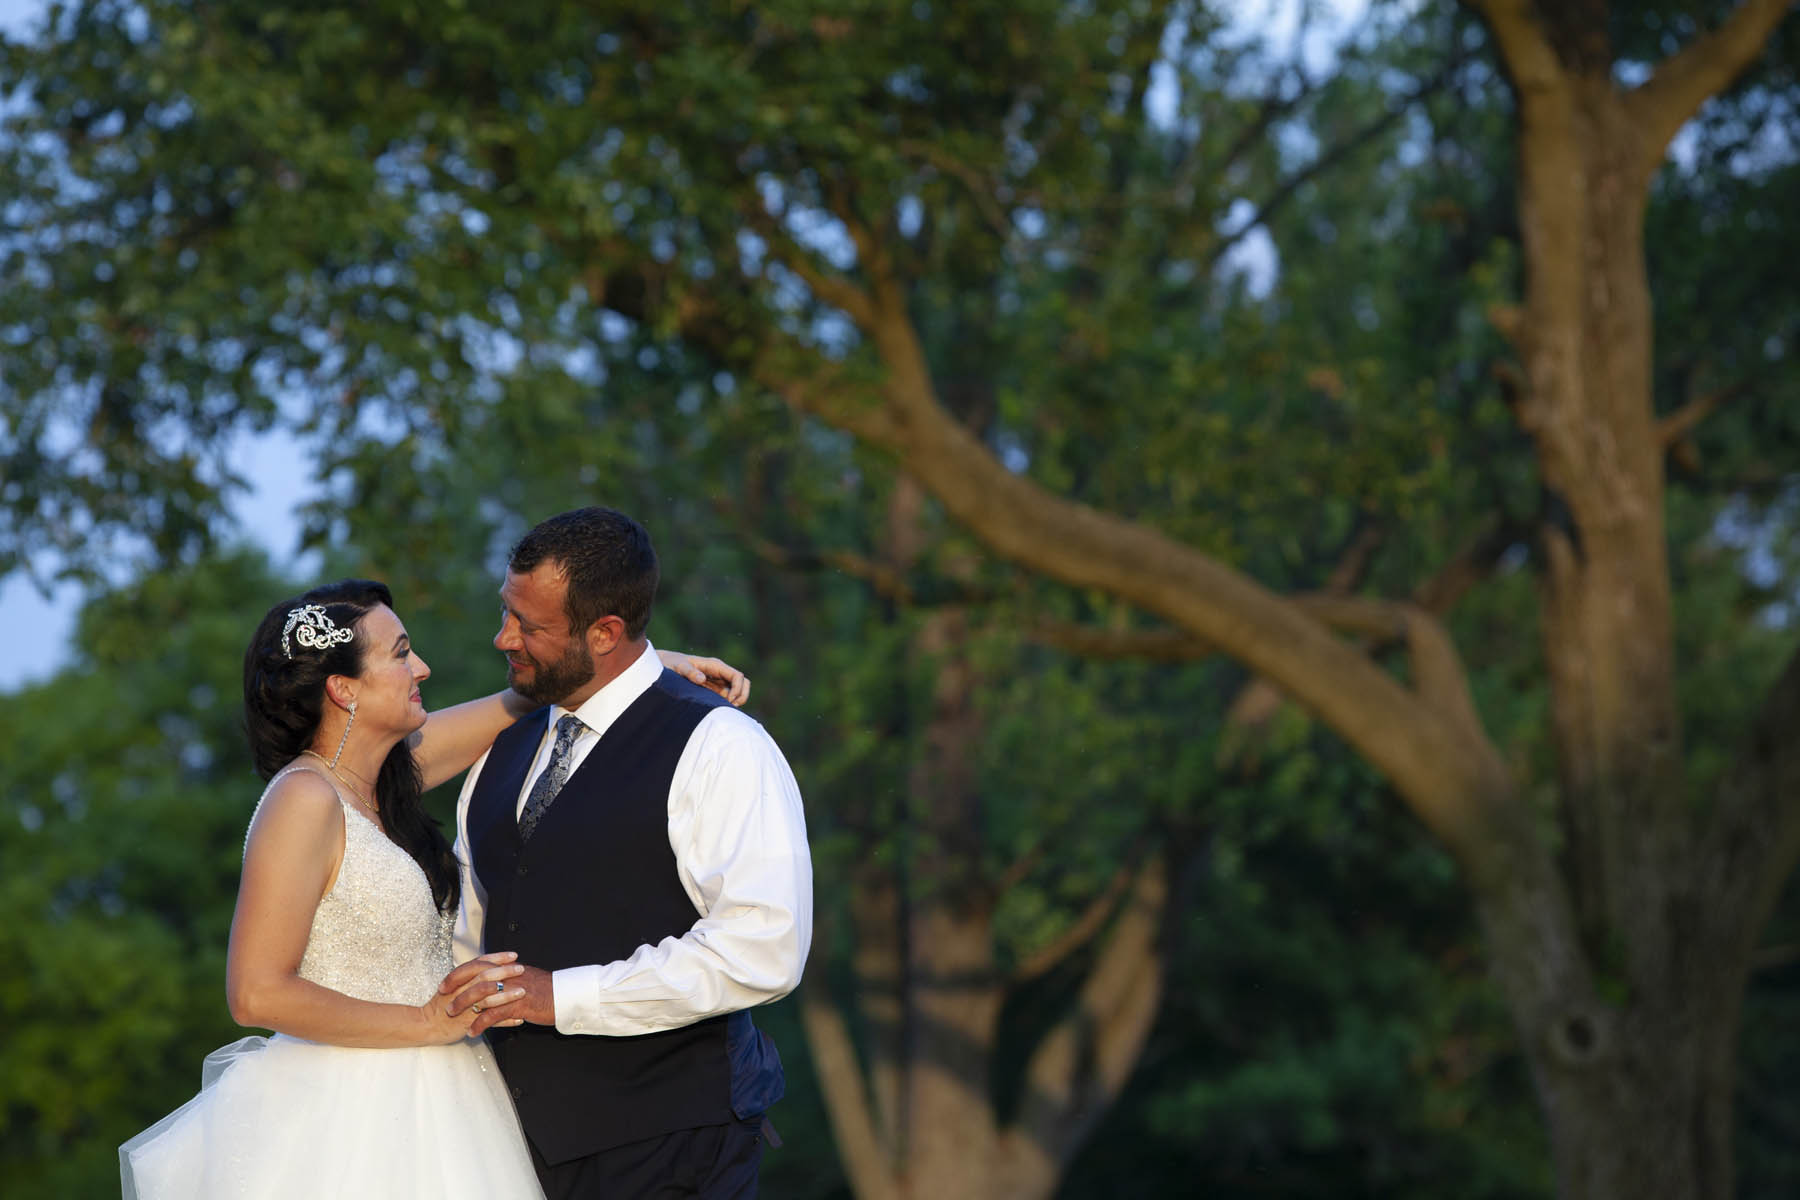 Wedding of Jenny Sauer & Mark Schmidgall Saturday 8 June 2019. Ceremony at St. Mark's Catholic Church in Winchester; reception at Jacksonville Country Club.Photos by Steve & Tiffany of Warmowski Photography http://www.warmowskiphoto.com 217.473.5581 - 190608